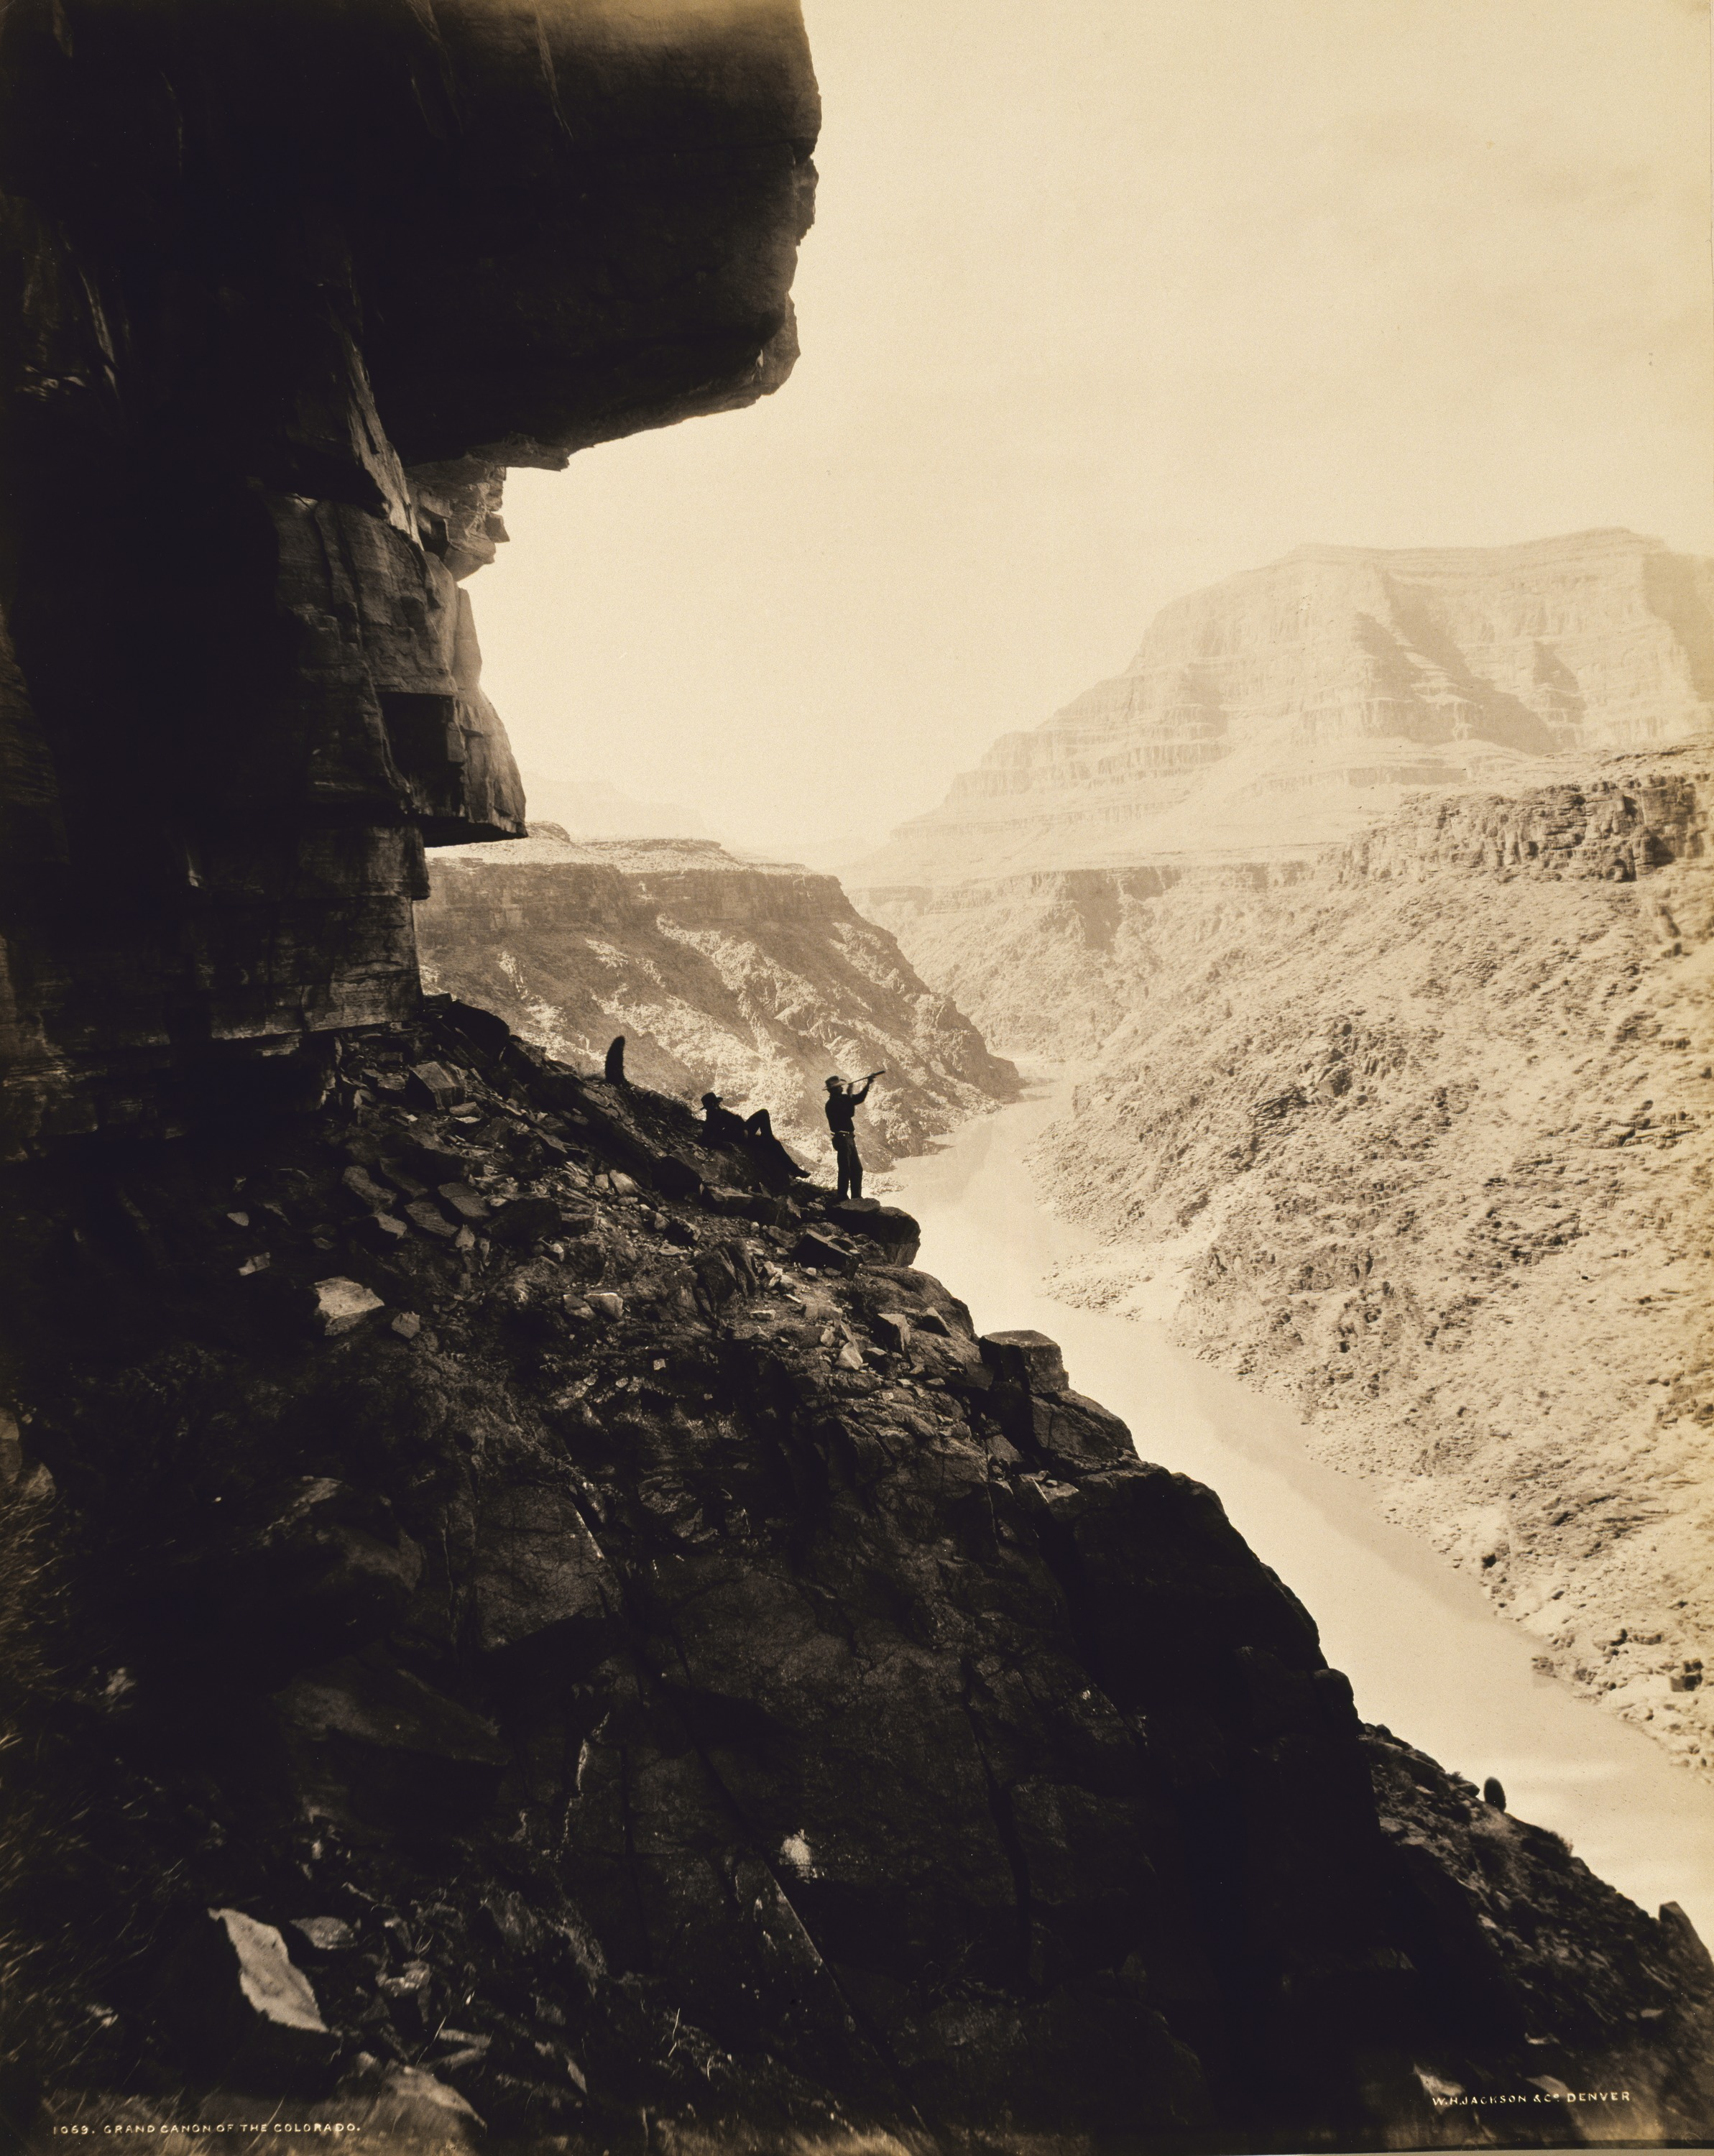 Fotó: William H. Jackson: Grand Canyon, 1880 körül, albumin<br />Smithsonian American Art Museum, Museum purchase from the Charles Isaacs Collection made possible in part by the Luisita L. and Franz H. Denghausen Endowment